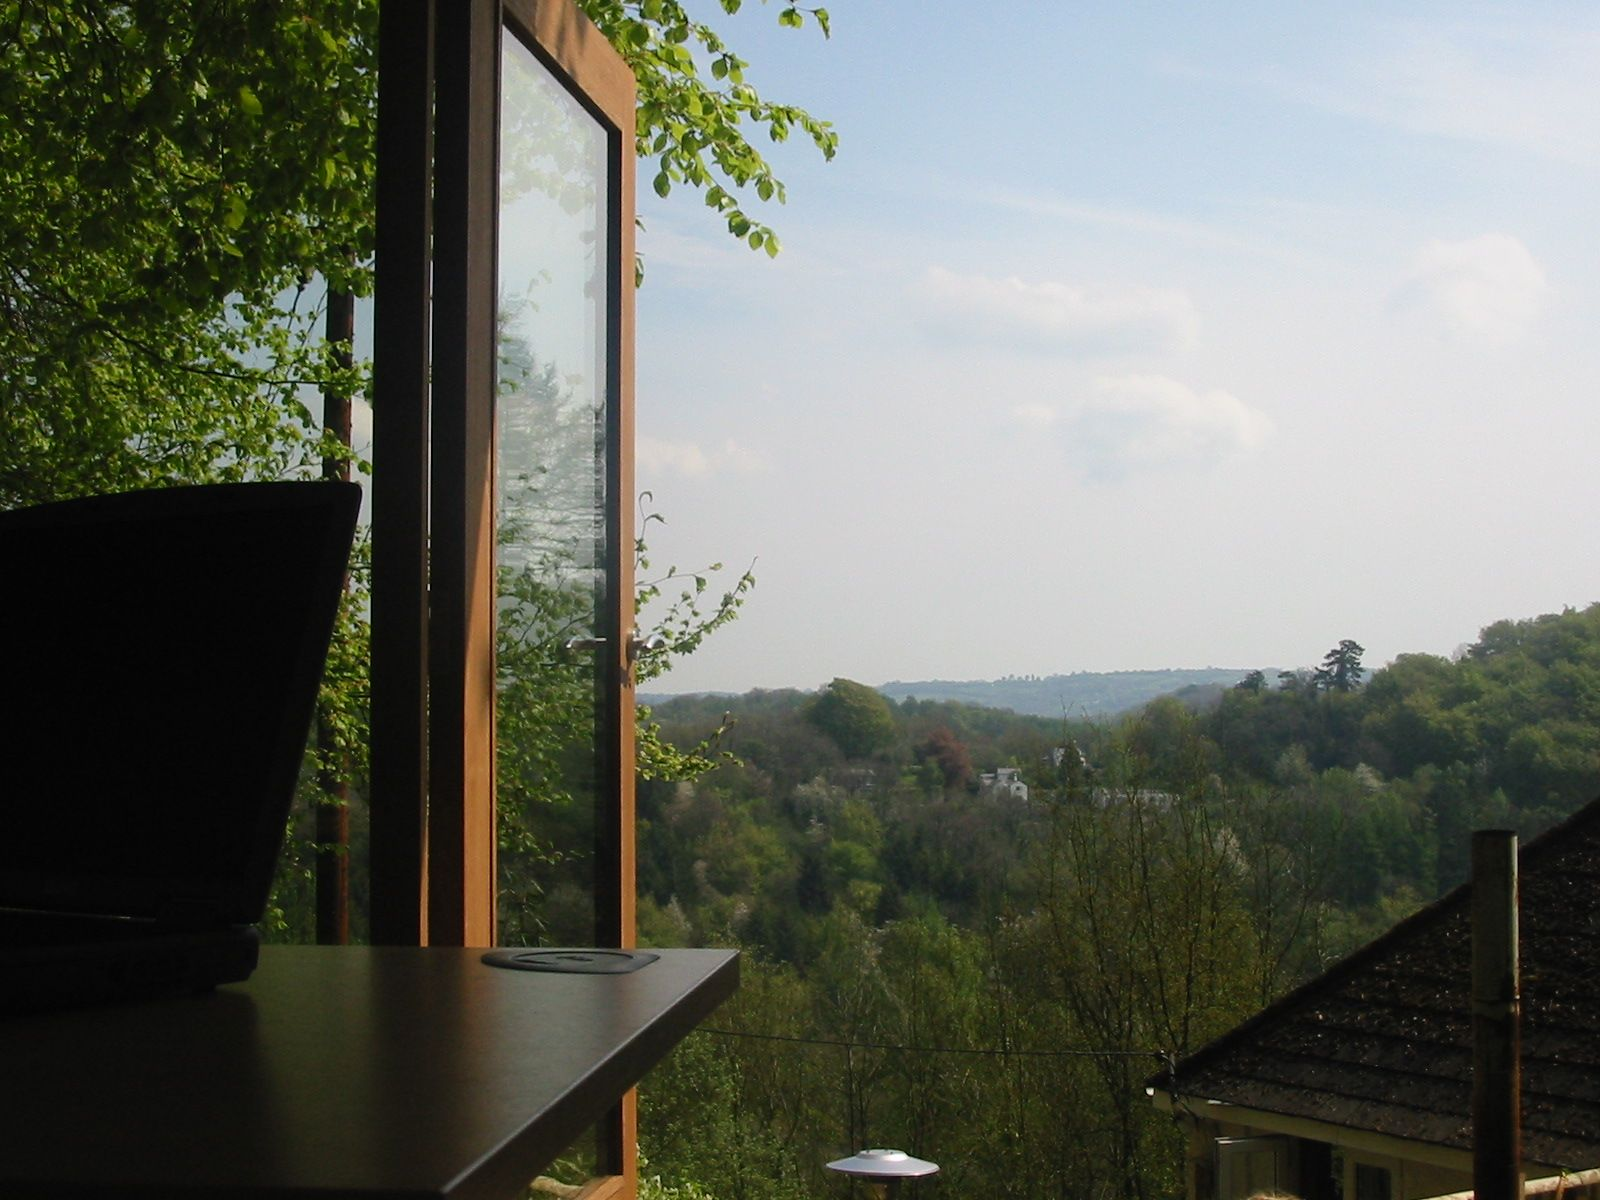 Here's a #relaxationroom with a view!